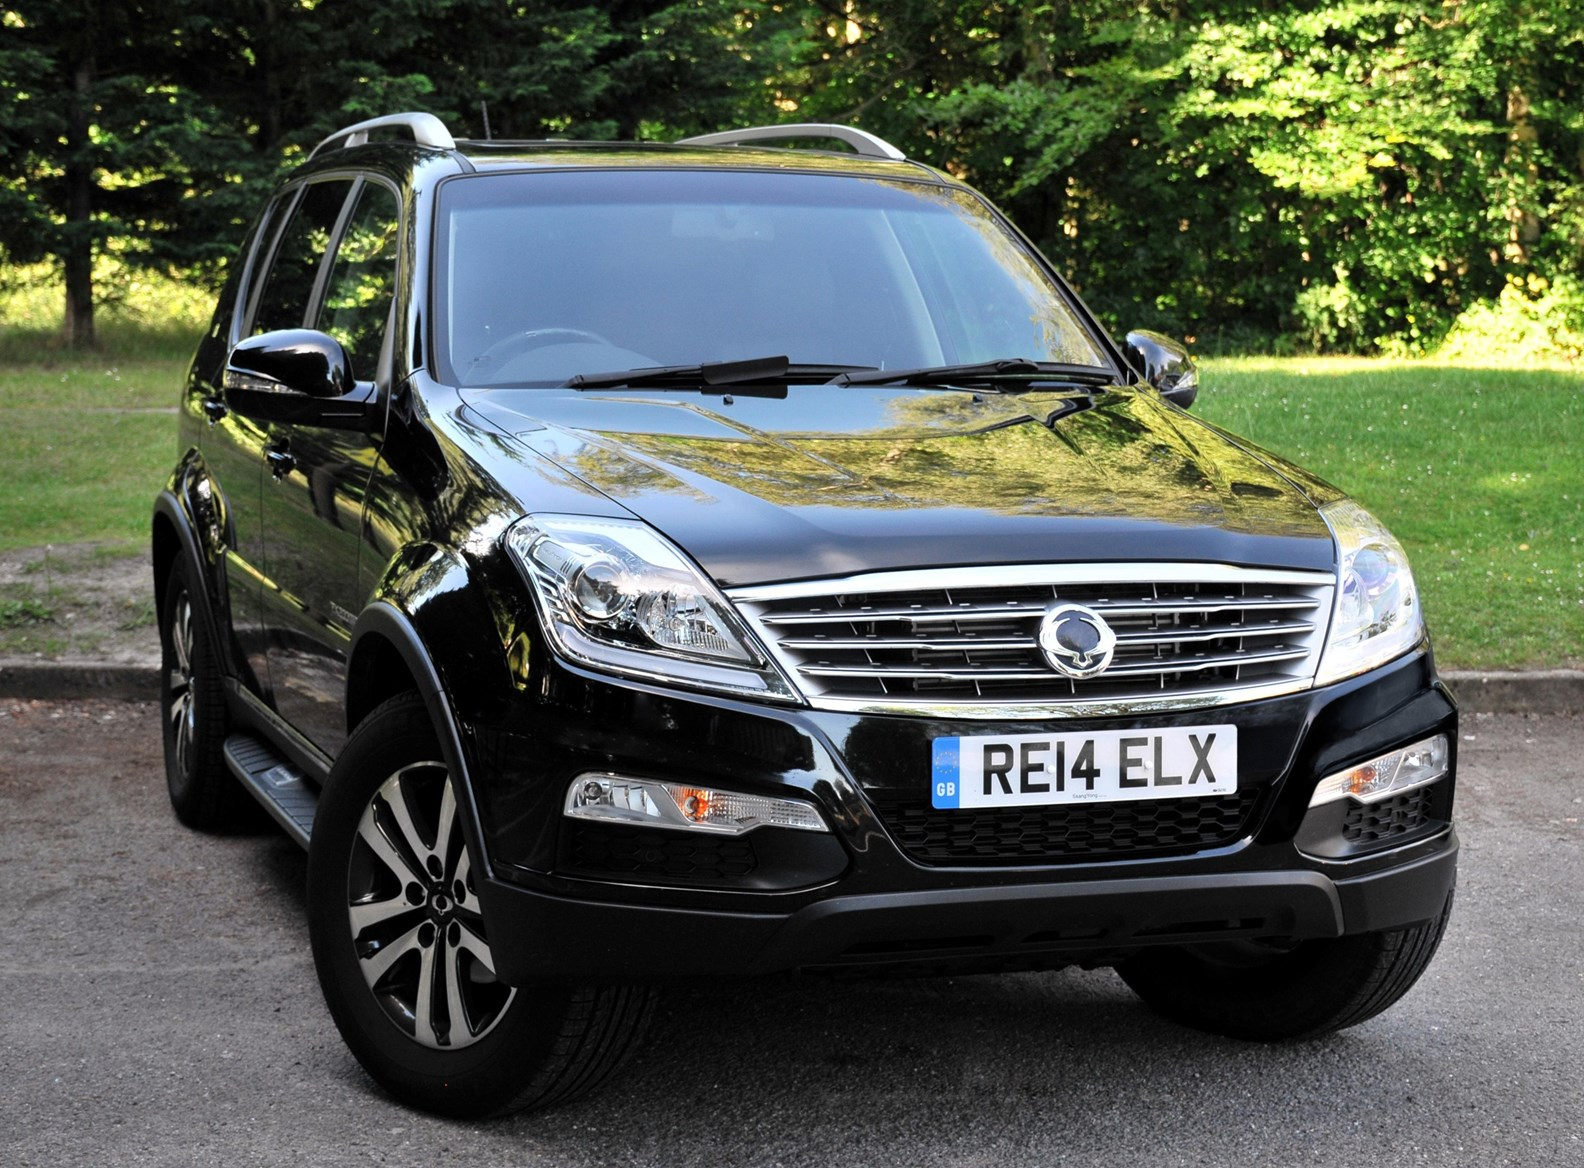 Ex Police Cars For Sale Uk >> SsangYong Rexton W Estate Review (2014 - 2016) | Parkers